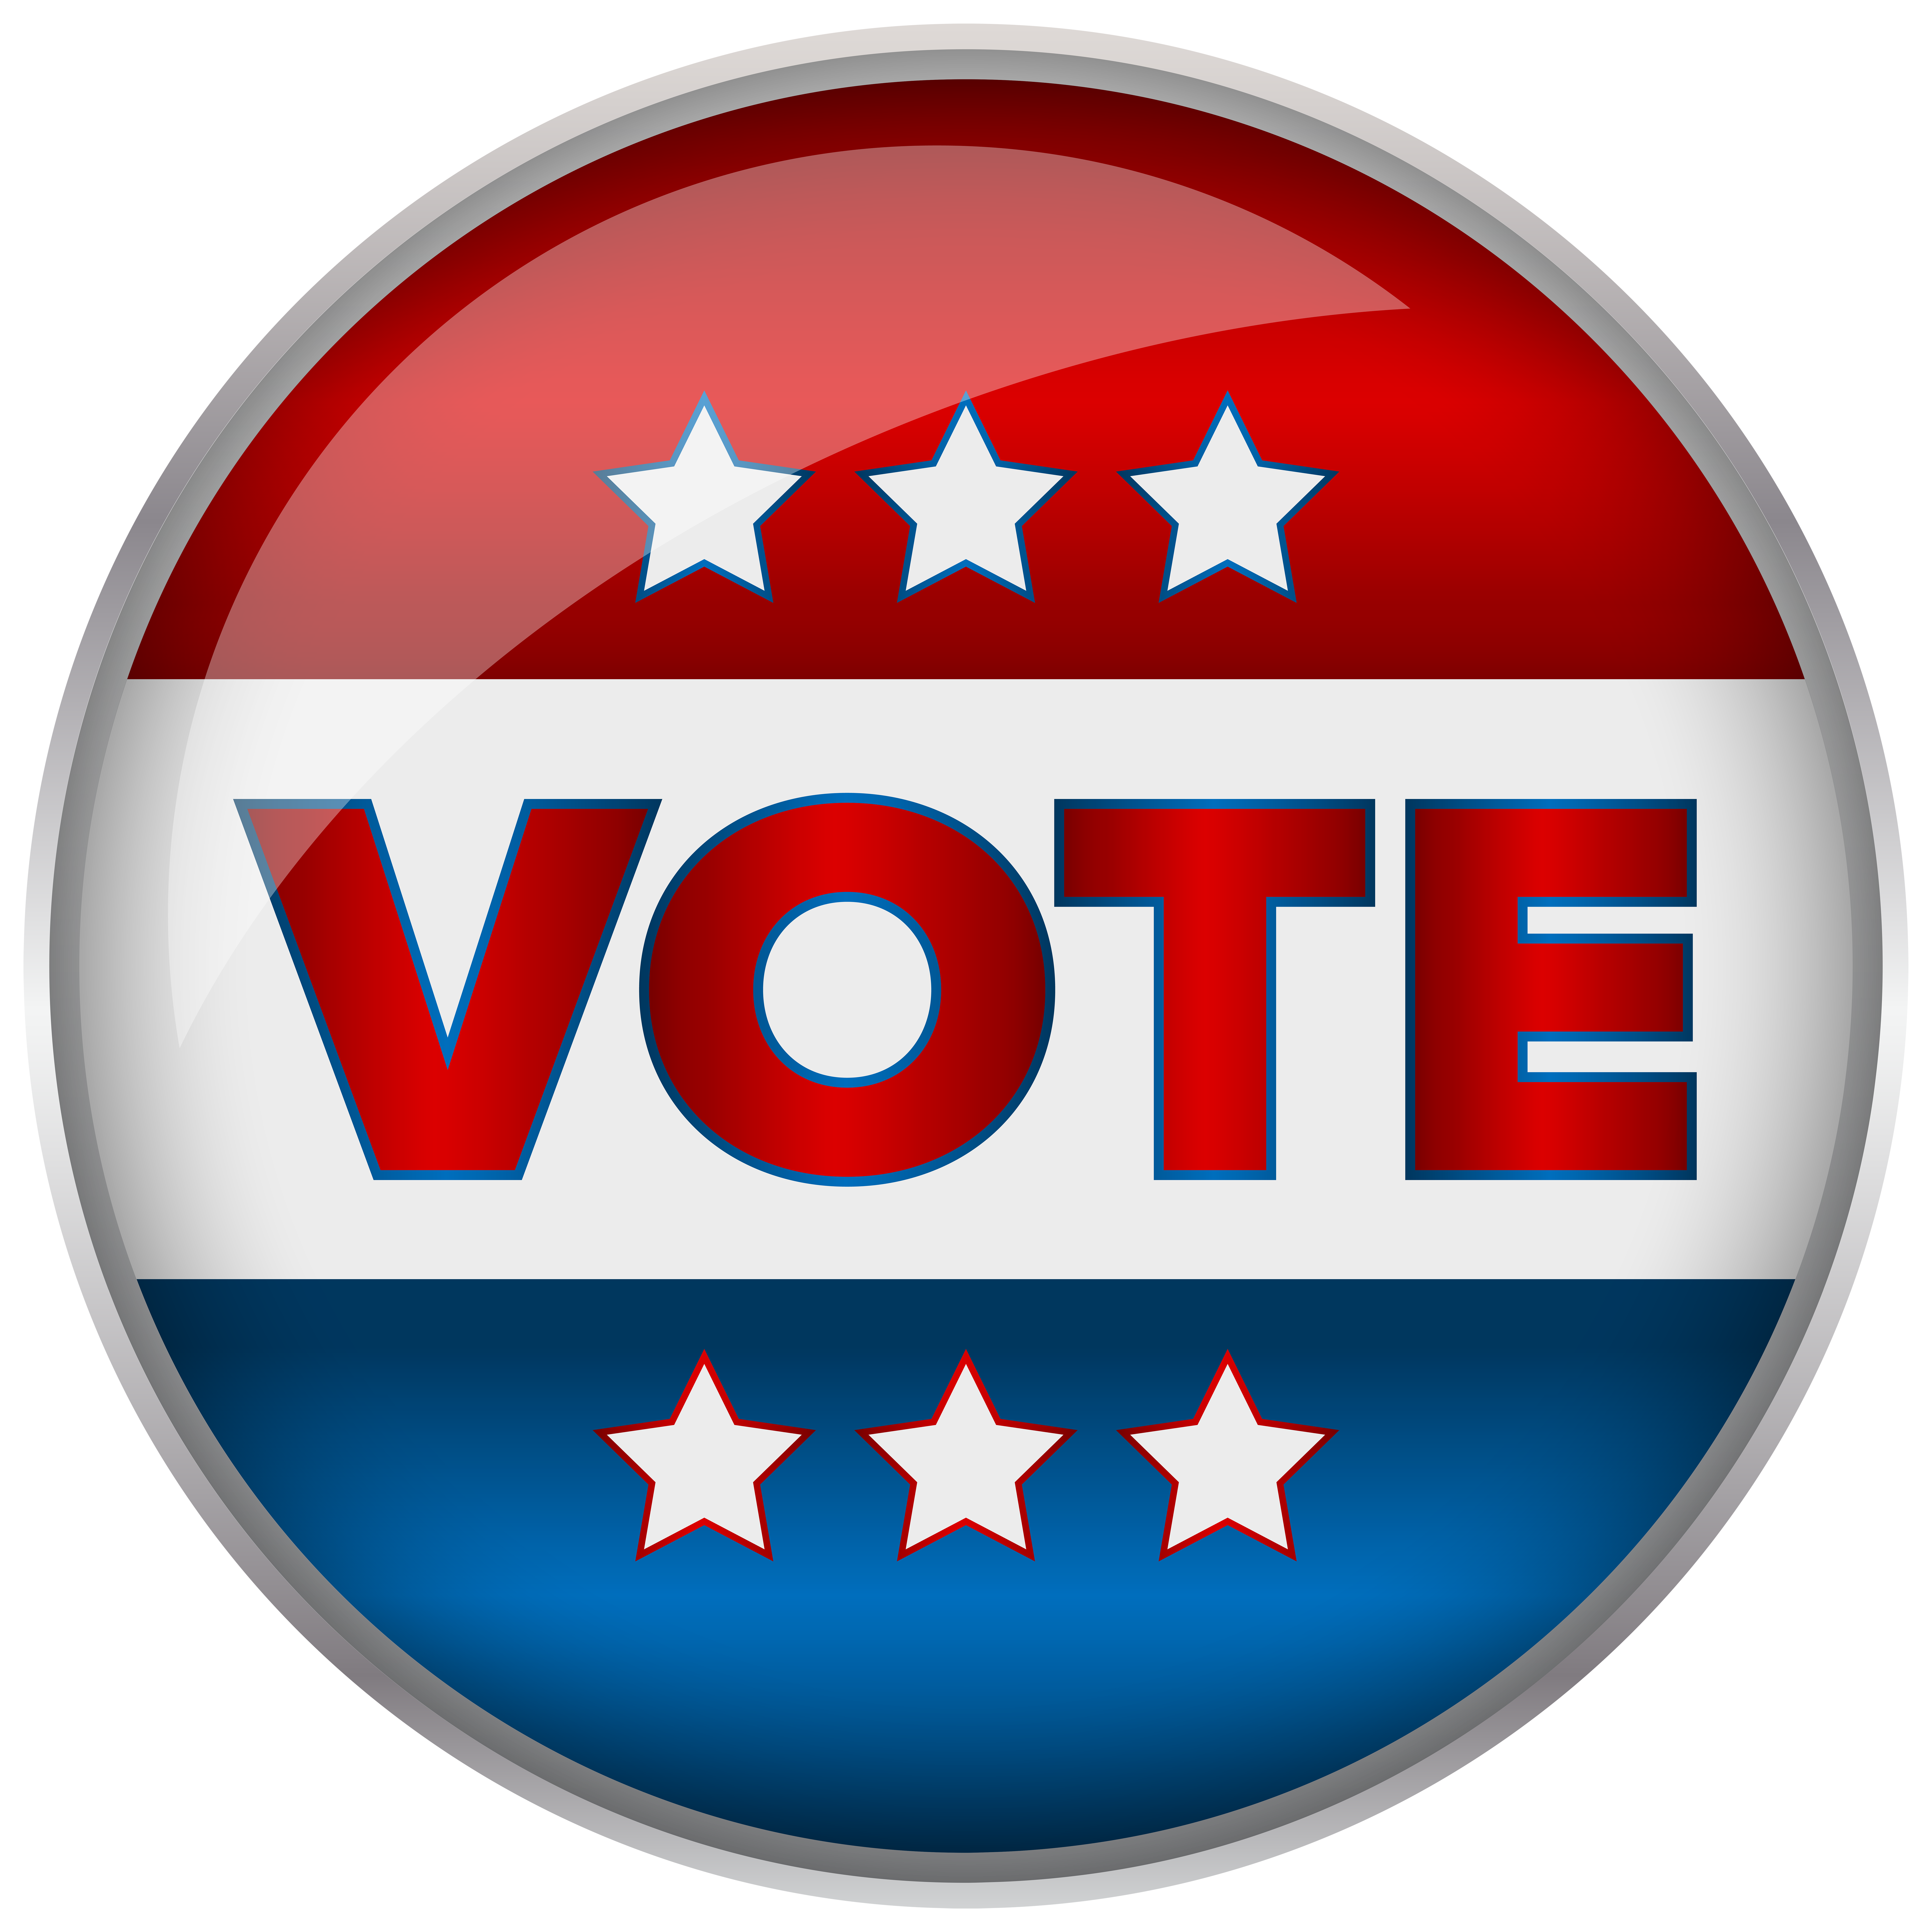 Voting clipart icon. Red blue badge vote